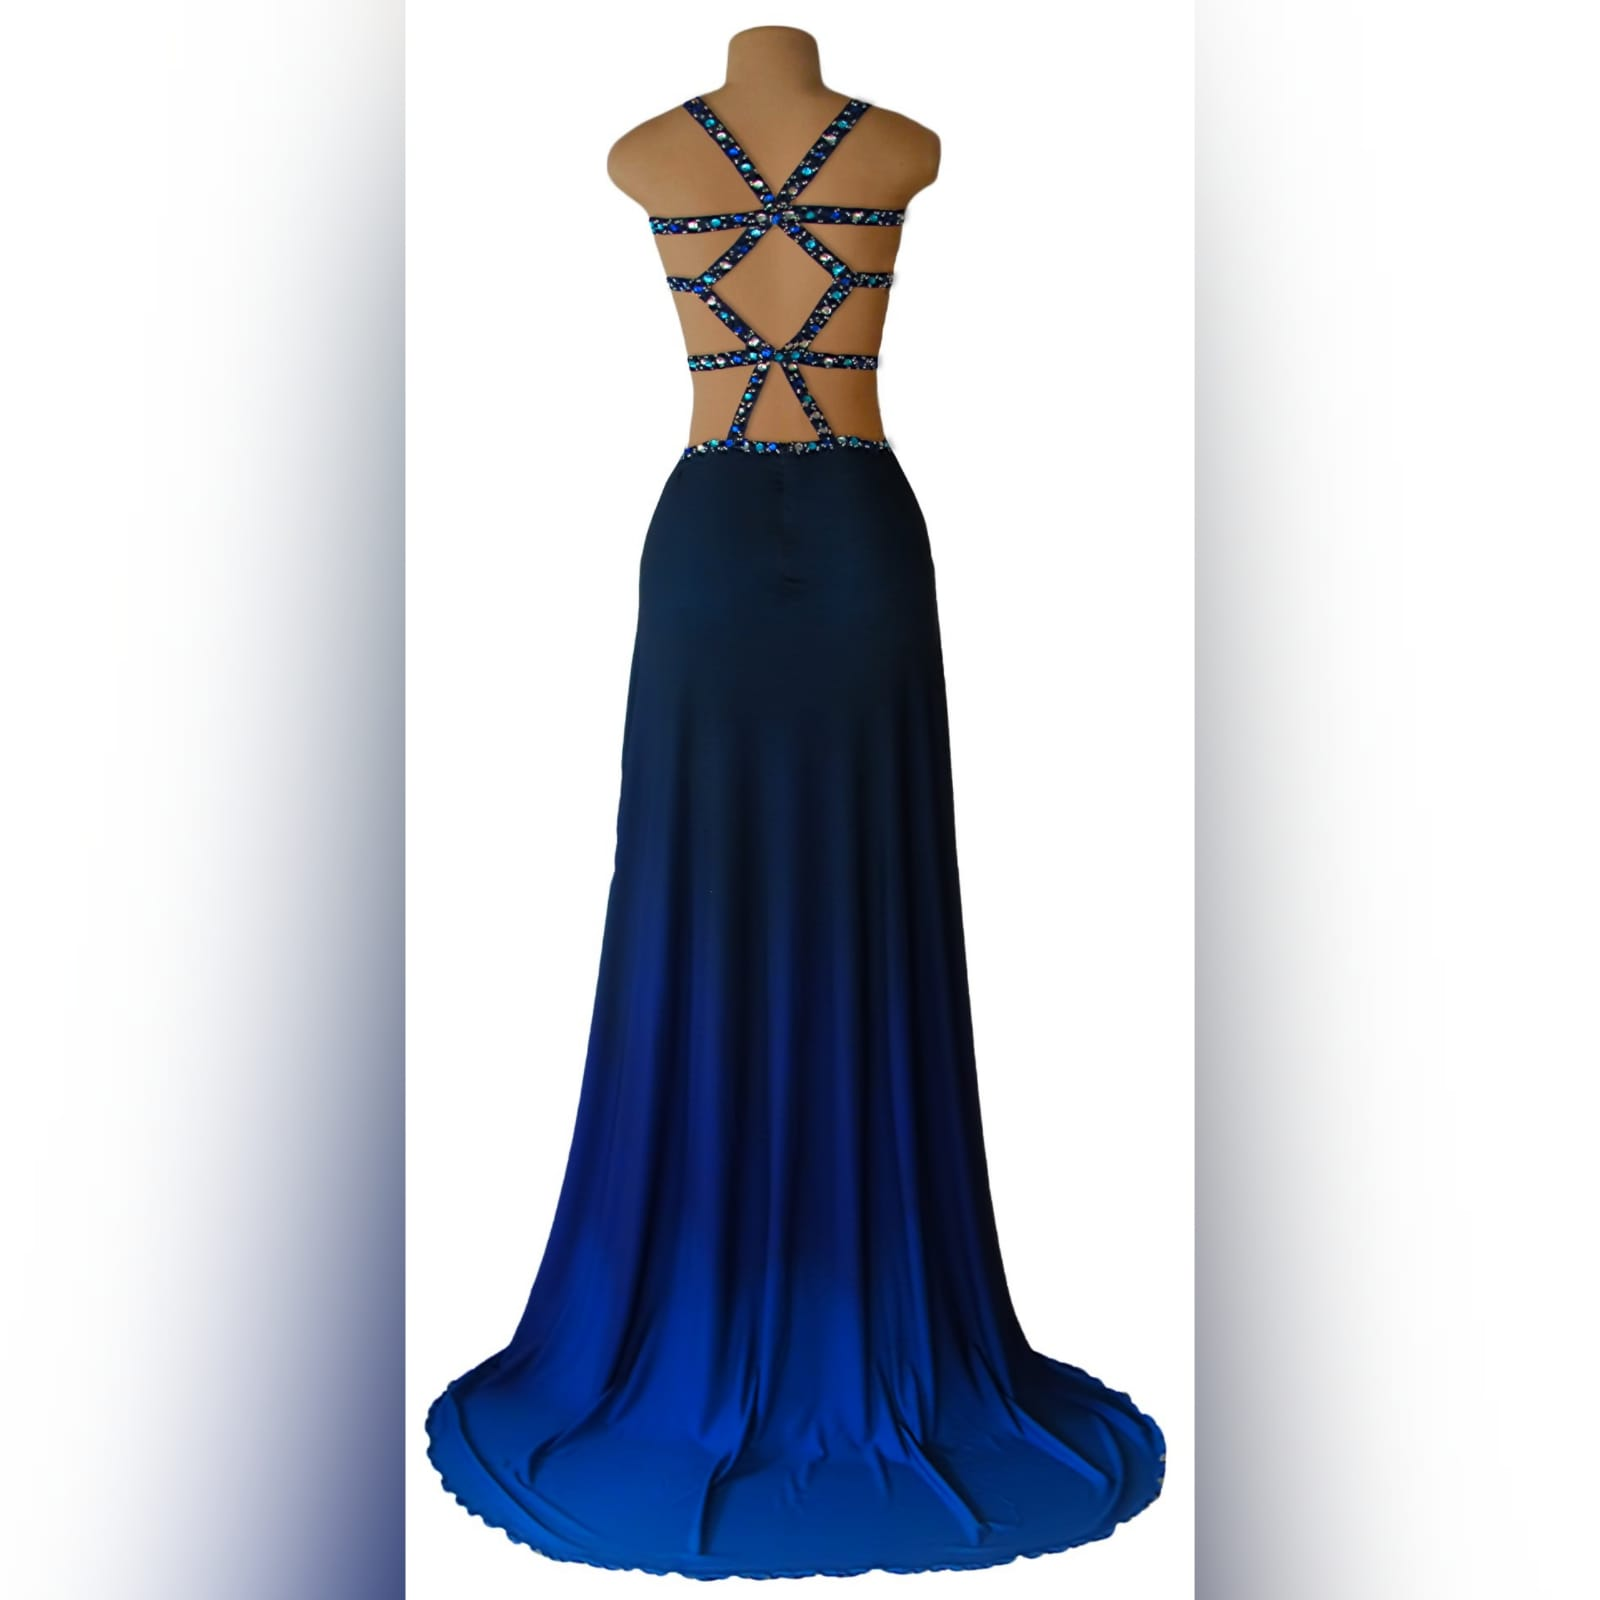 Royal blue and navy blue ombre sexy prom dress 5 royal blue and navy blue ombre sexy prom dress. With a slit and a train. With tummy and back openings detailed with silver, blue and turquoise beads.